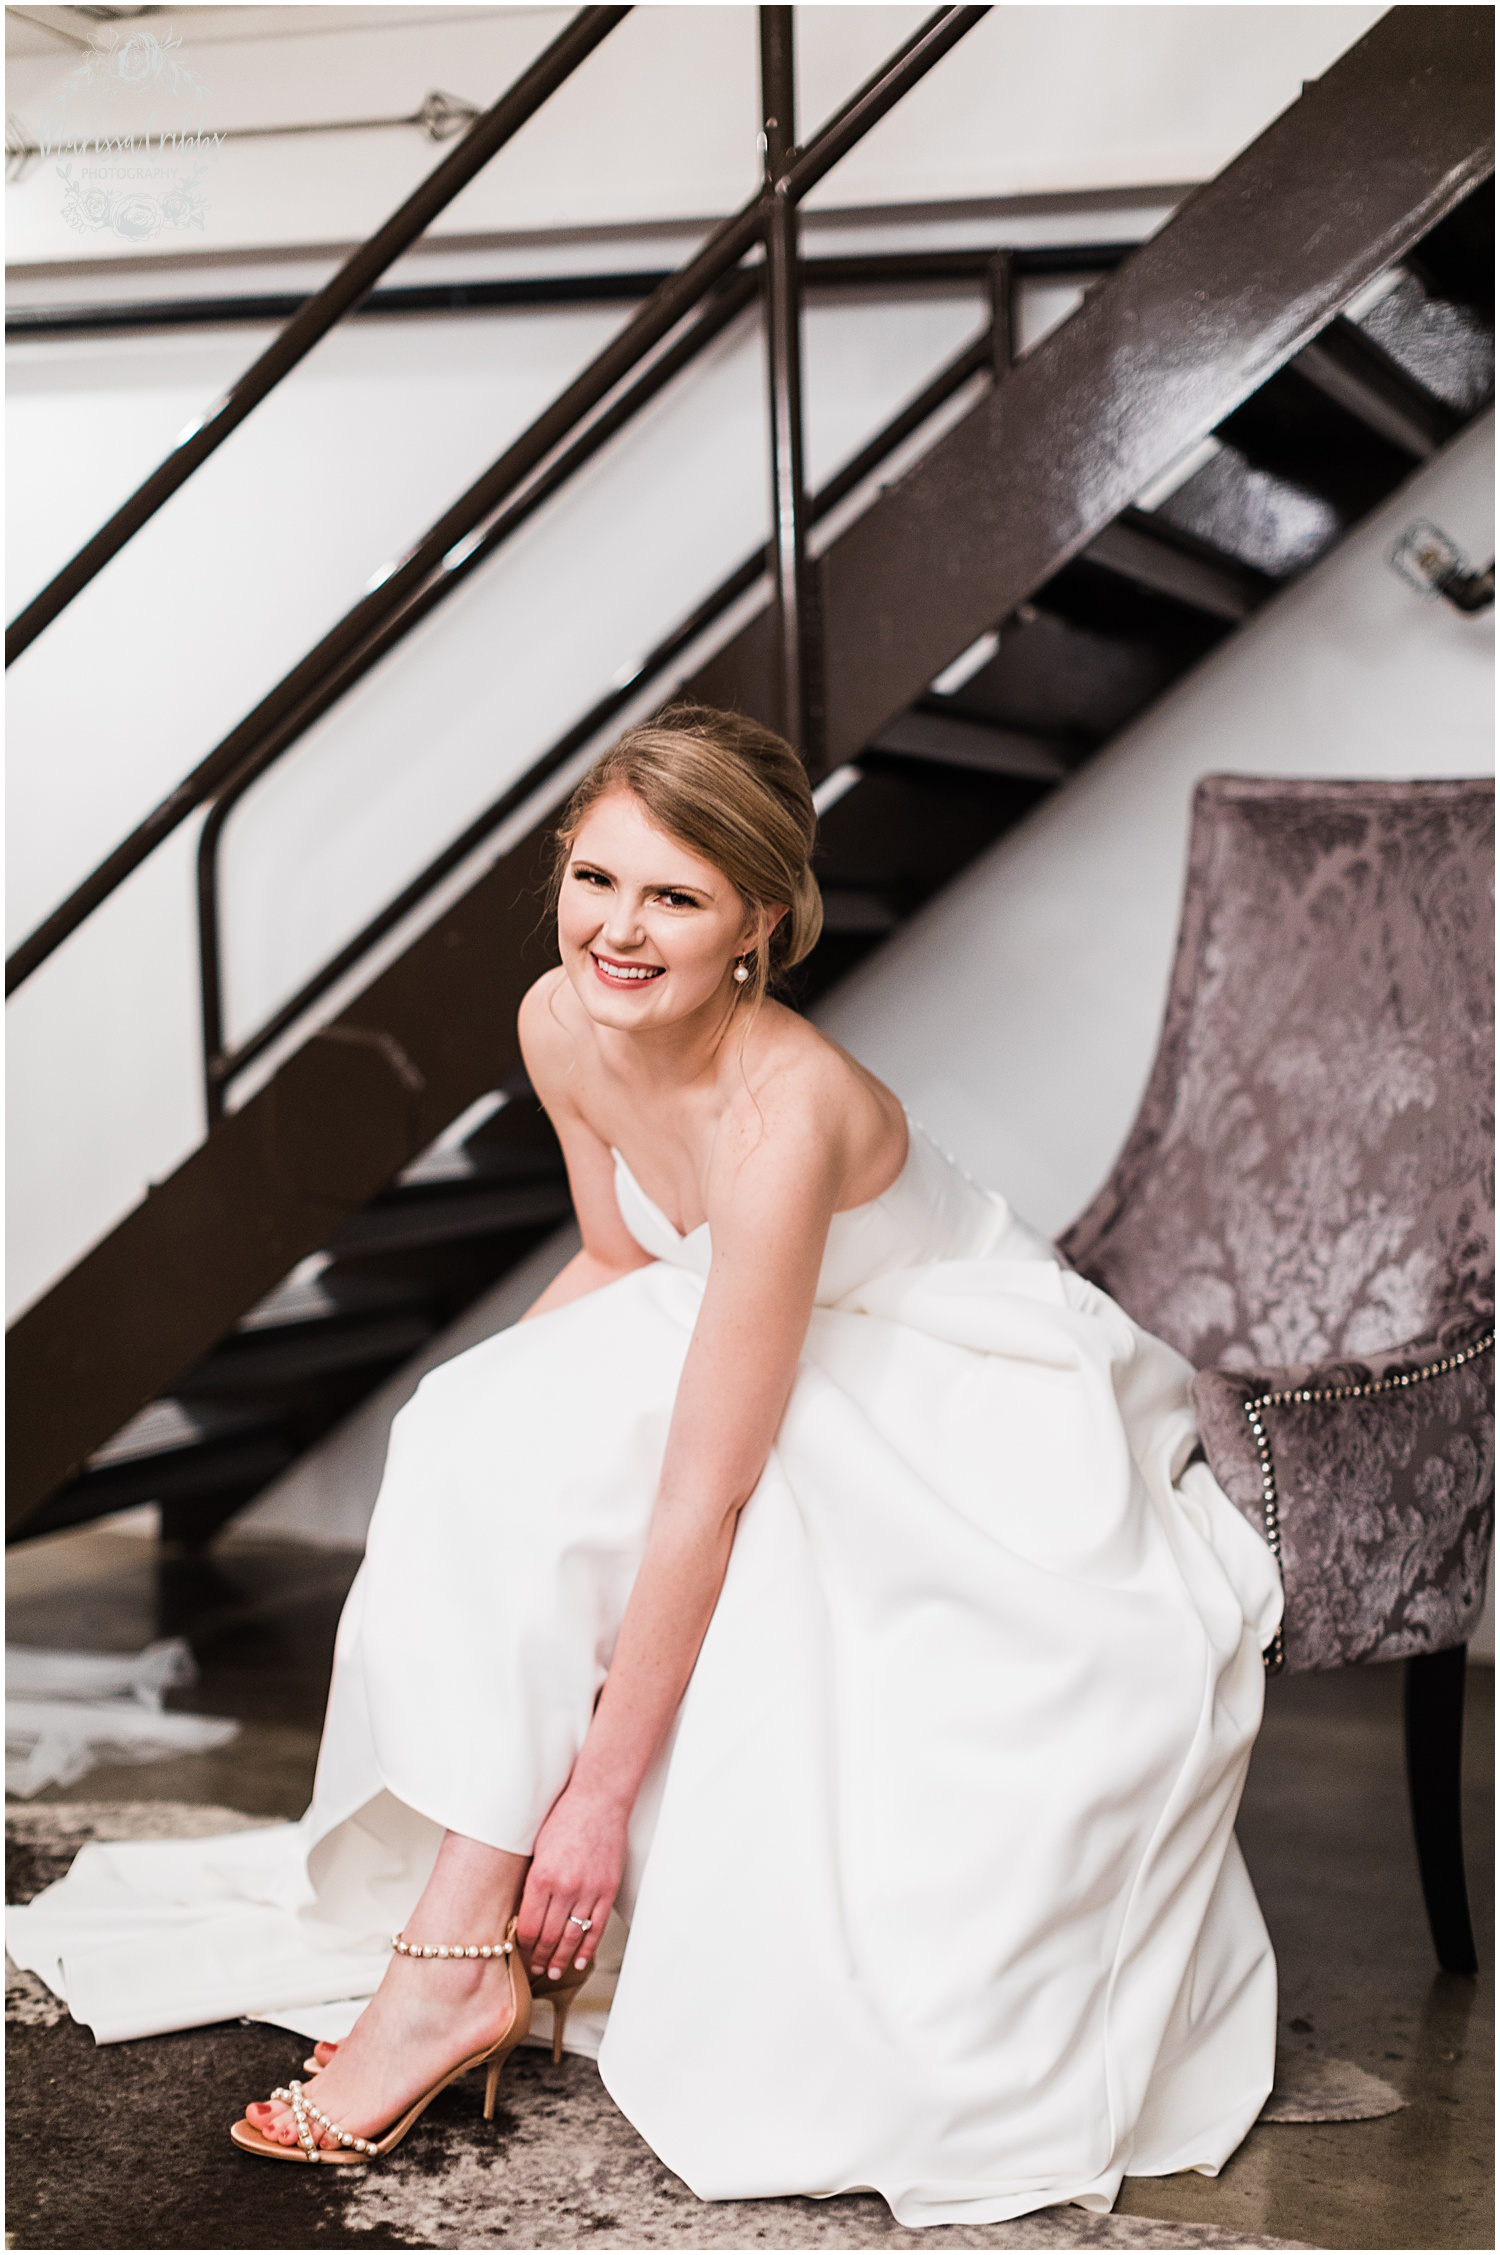 ABBY & CHARLIE WEDDING | THE HUDSON EVENT SPACE WEDDING | MARISSA CRIBBS PHOTOGRAPHY_7500.jpg